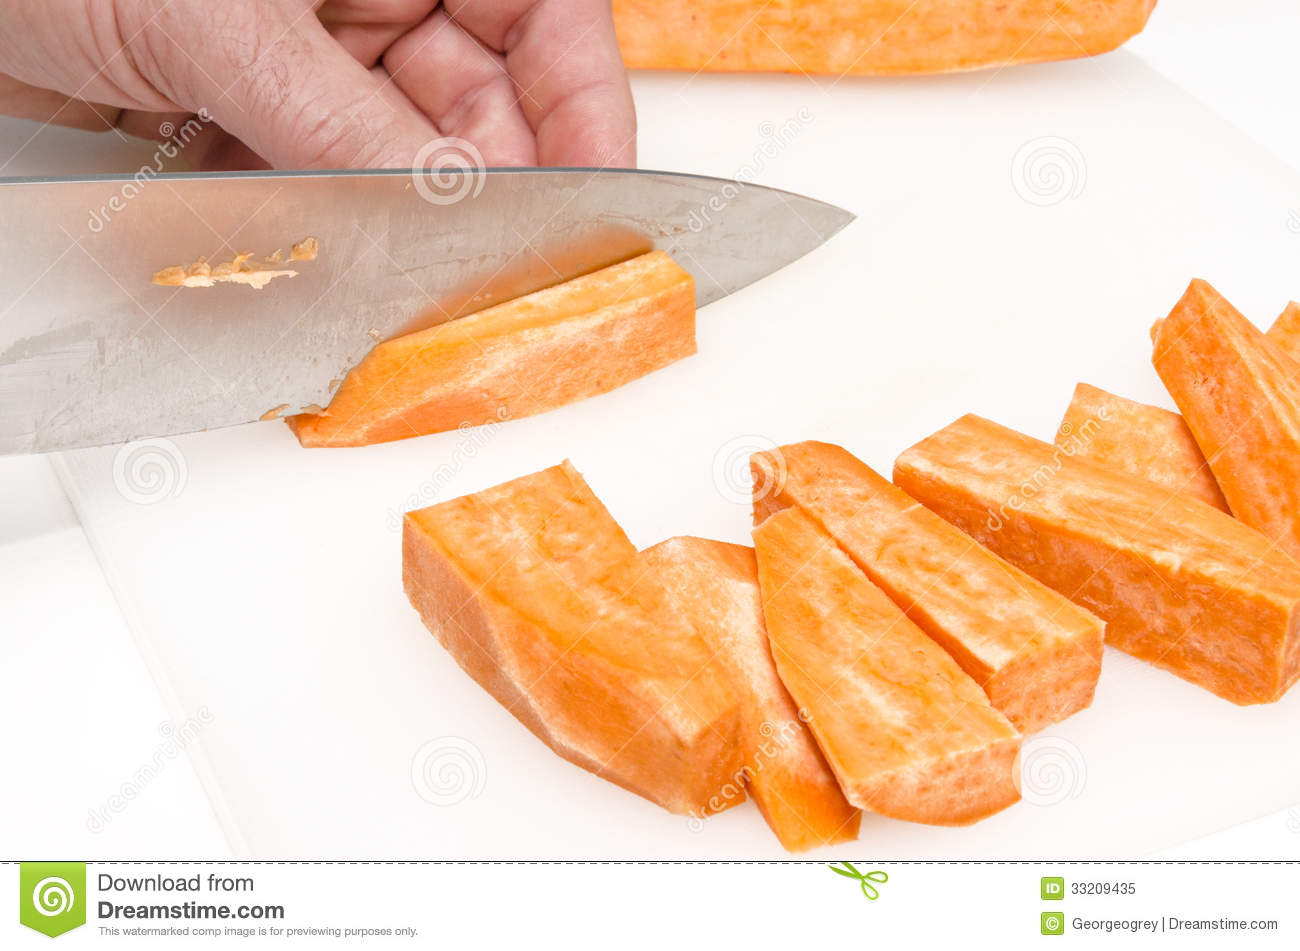 Preparation of sweet potatoe chips 4 royalty free stock for Sweet home 3d chip